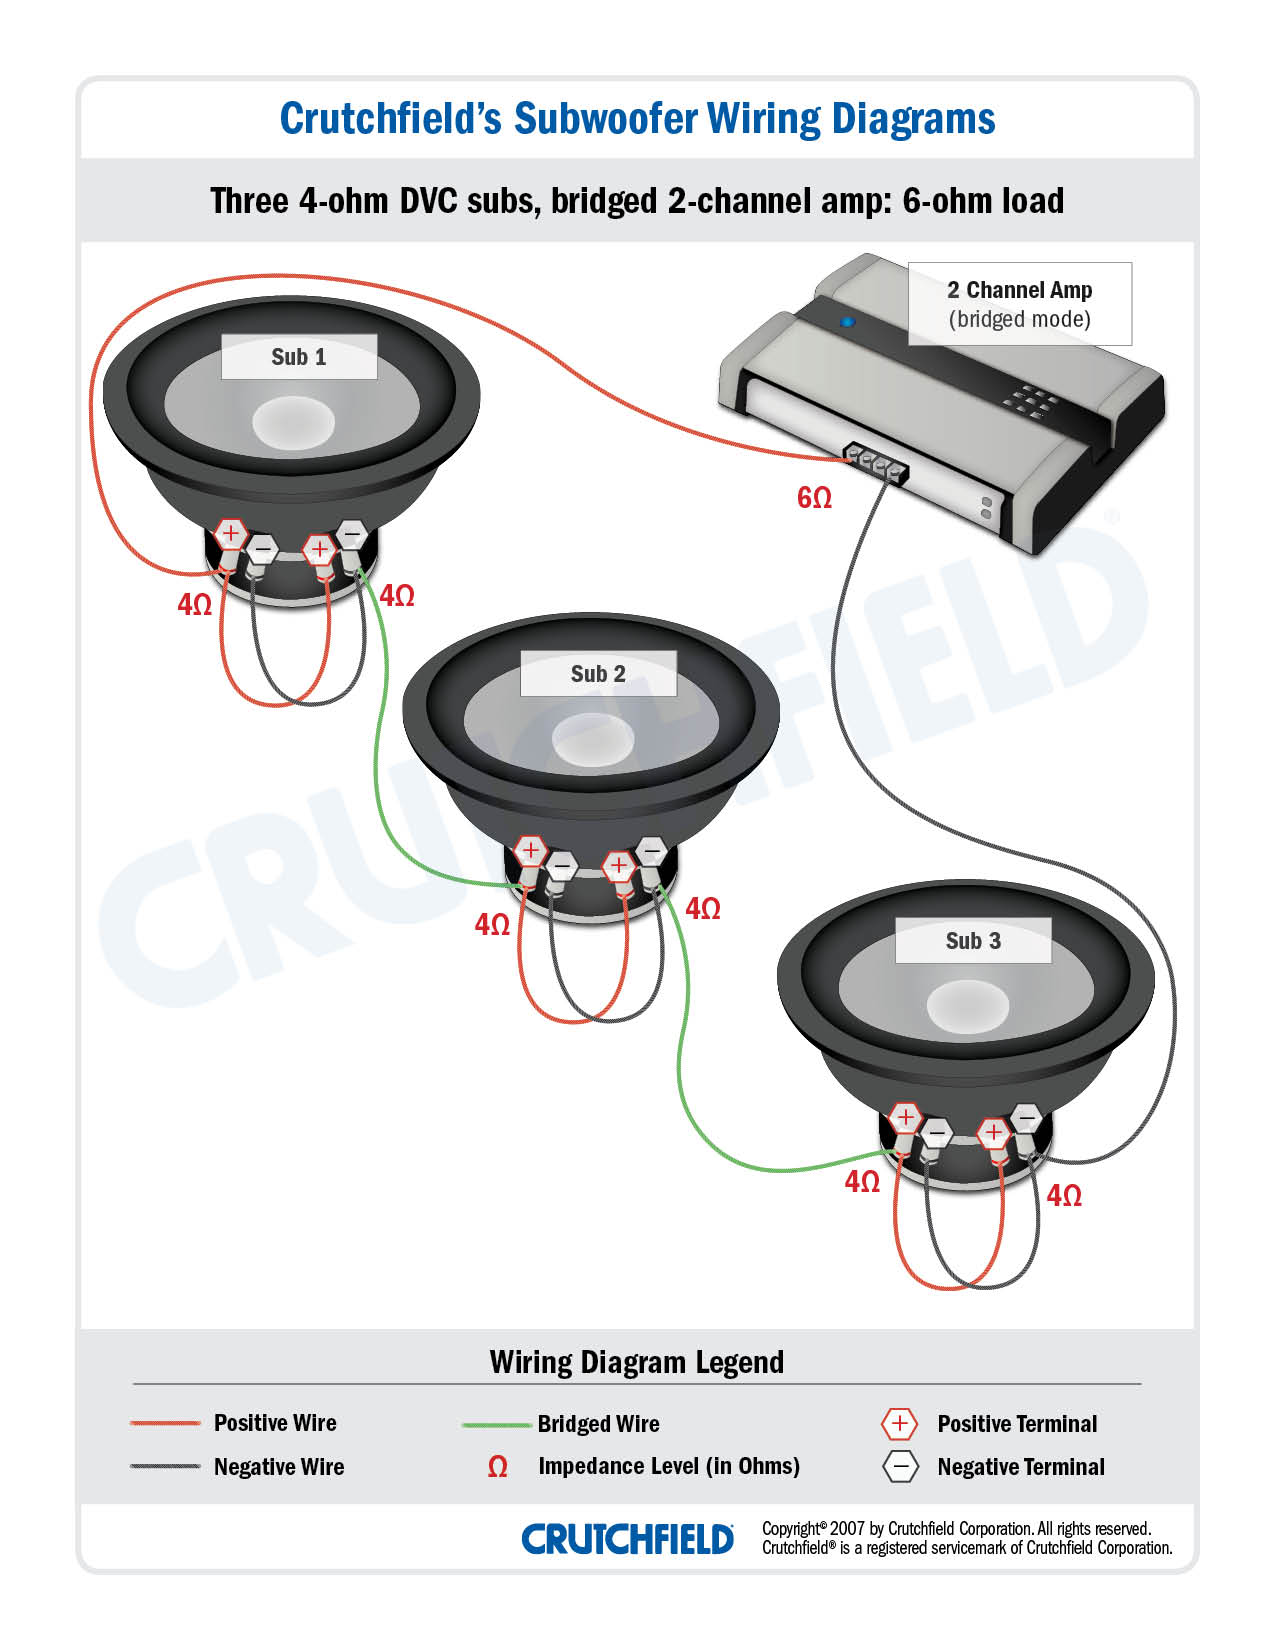 3 DVC 4 ohm 2 ch subwoofer wiring diagrams Dual Voice Coil Wiring at aneh.co